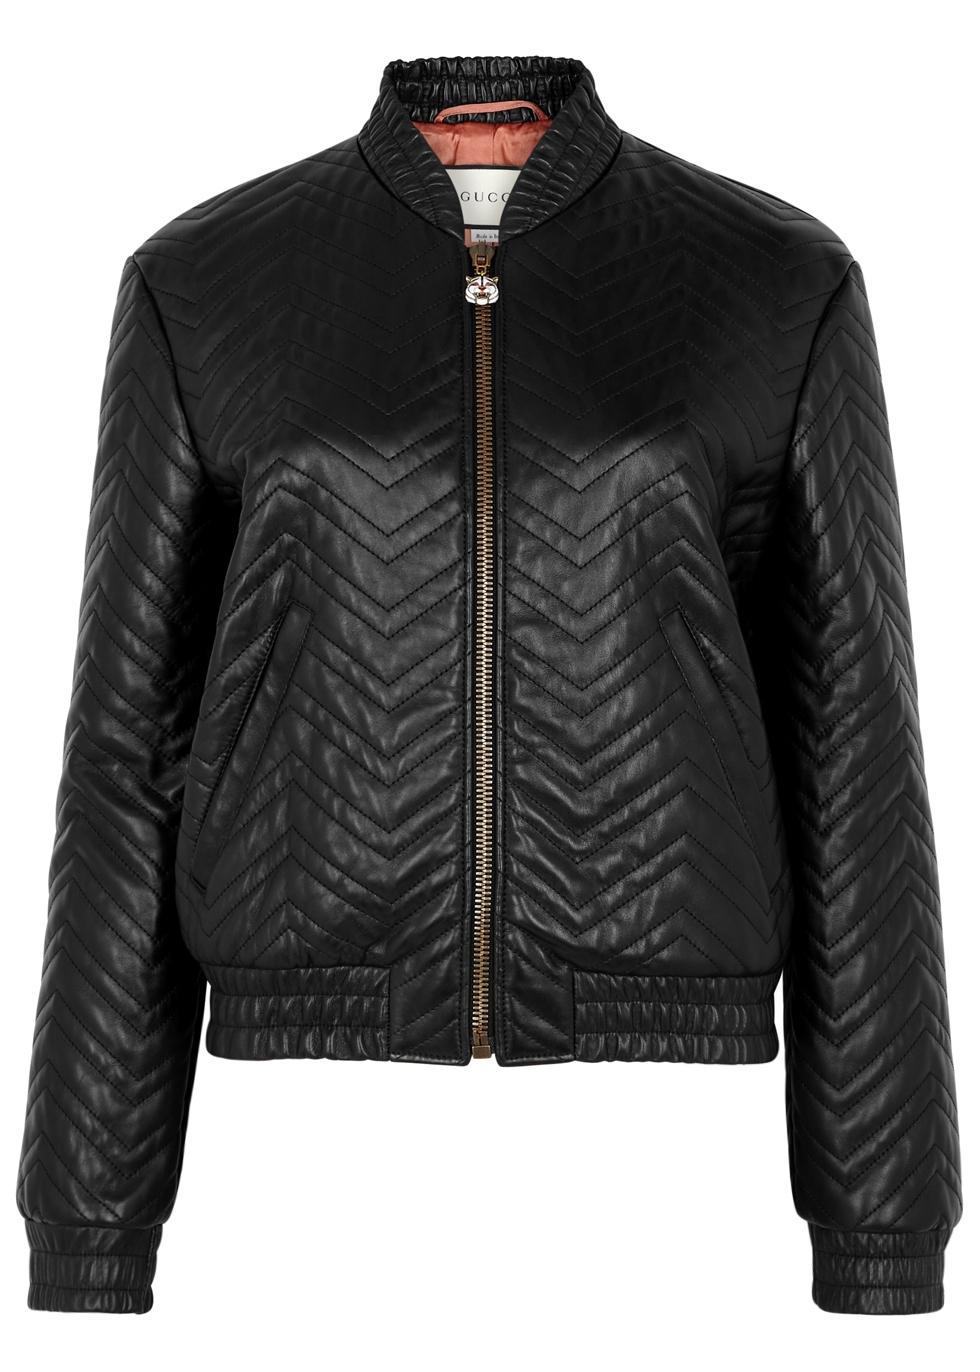 Black Matelassé Leather Bomber Jacket